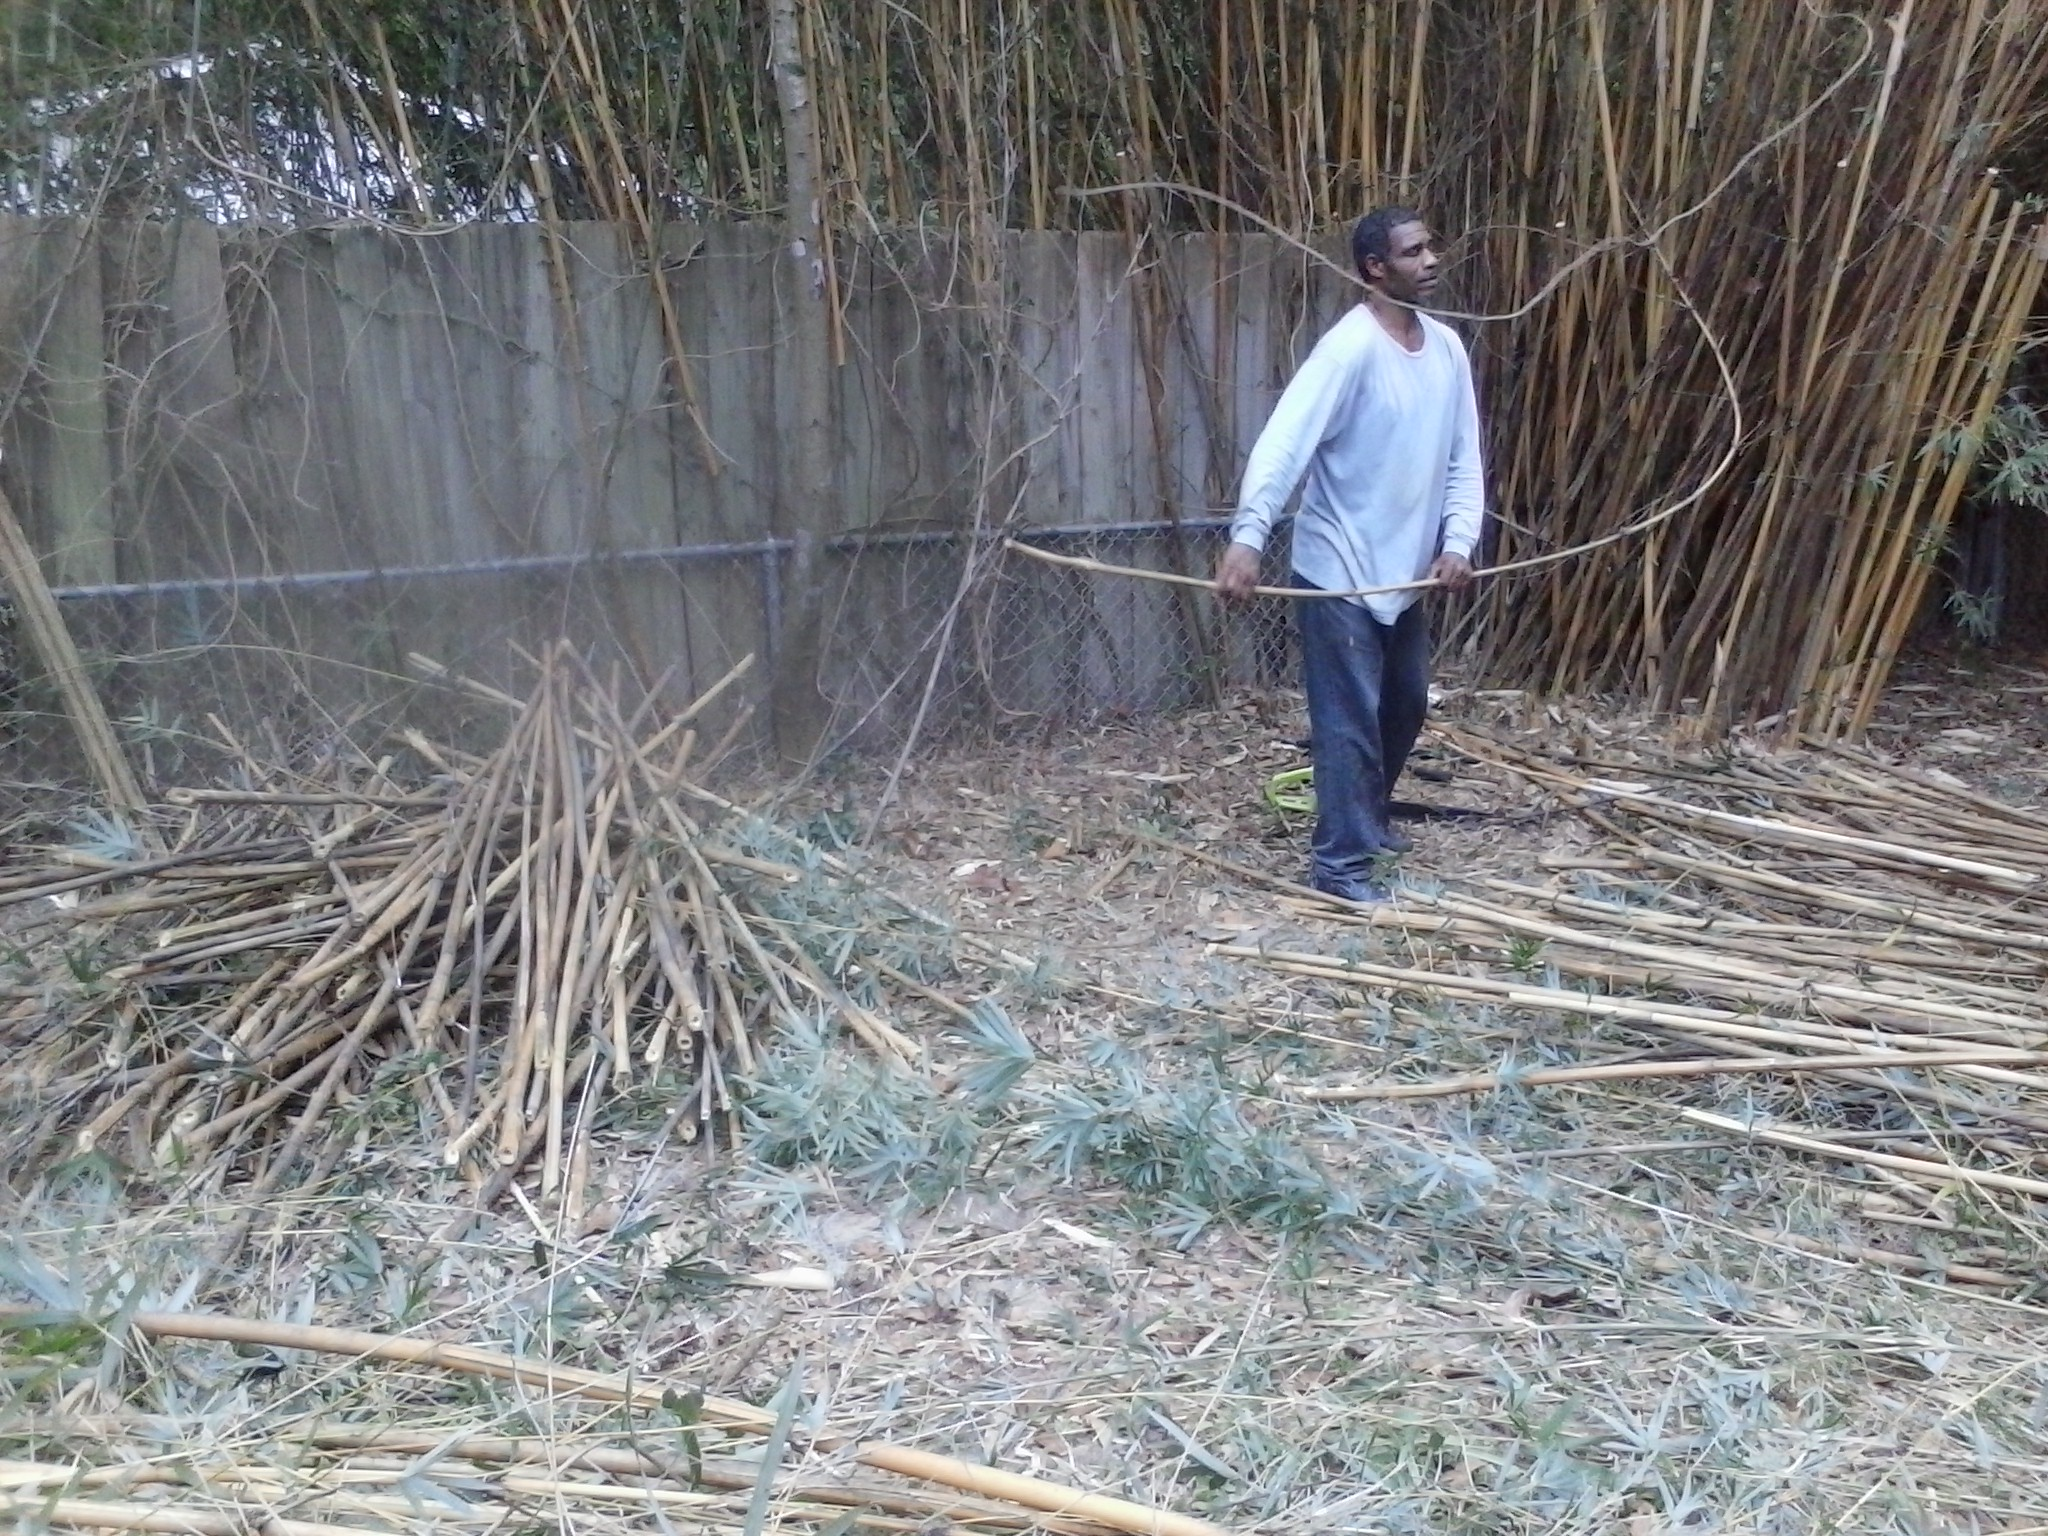 BAMBOO CUTTING